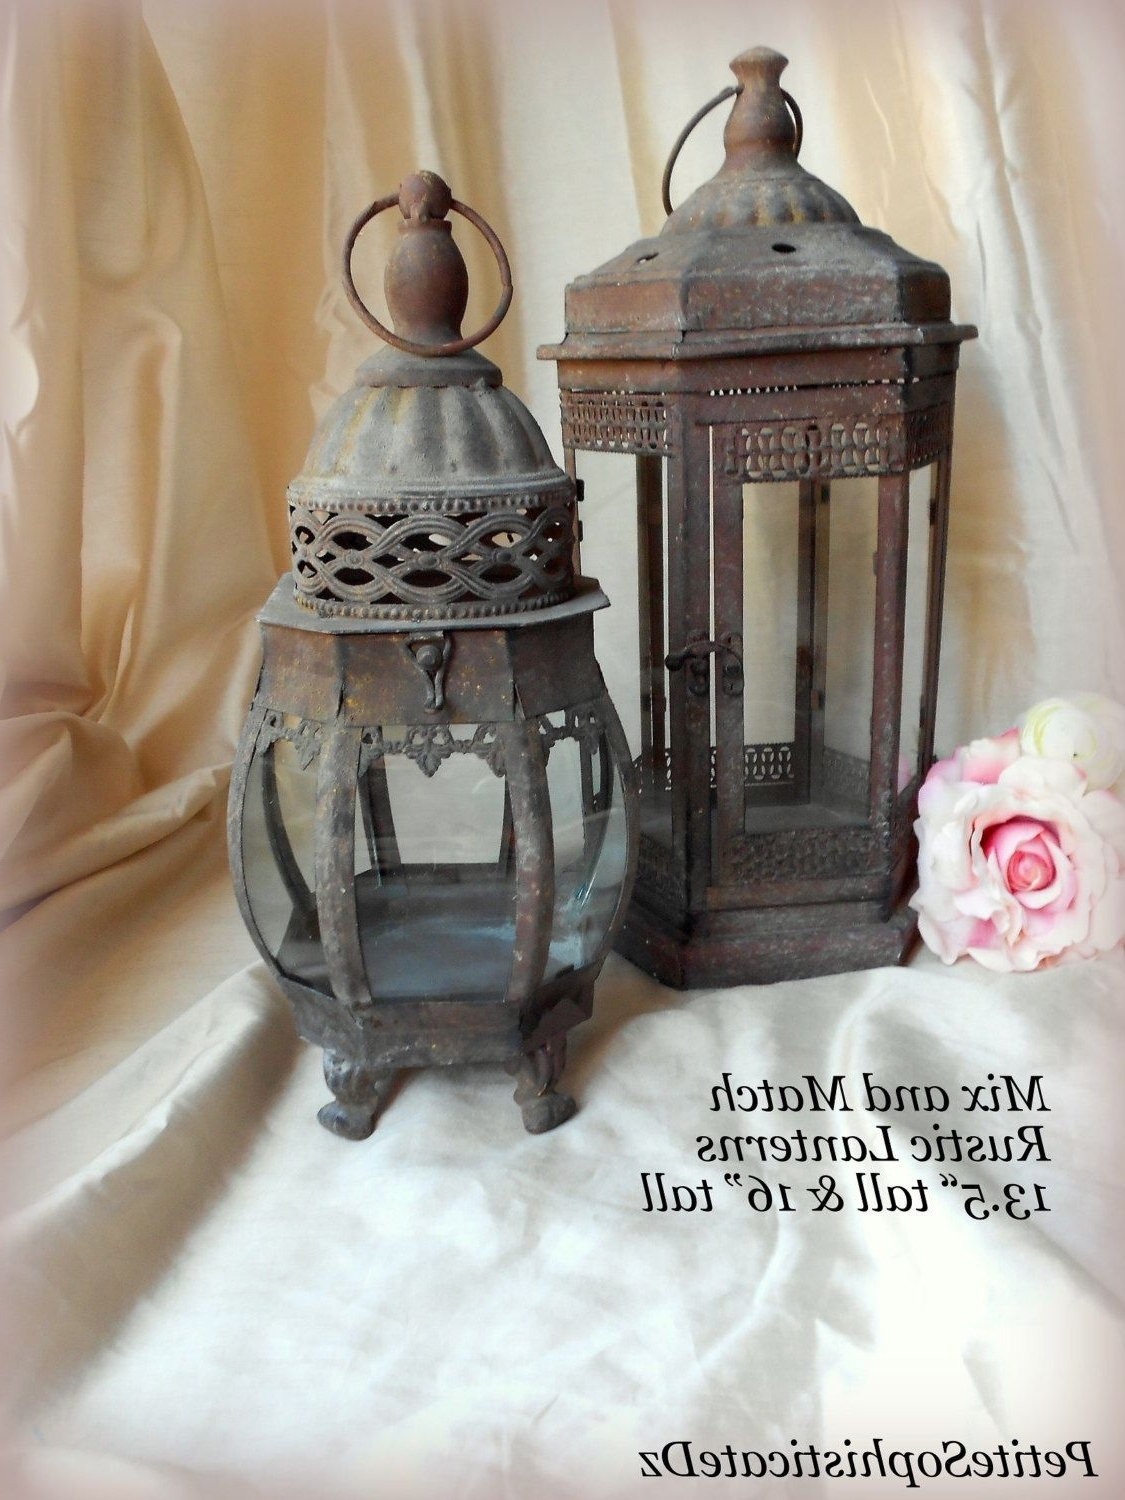 Fashionable Sale Mix & Match Rustic Lanterns,indoor/outdoor Rustic Centerpiece Inside Etsy Outdoor Lanterns (View 14 of 20)